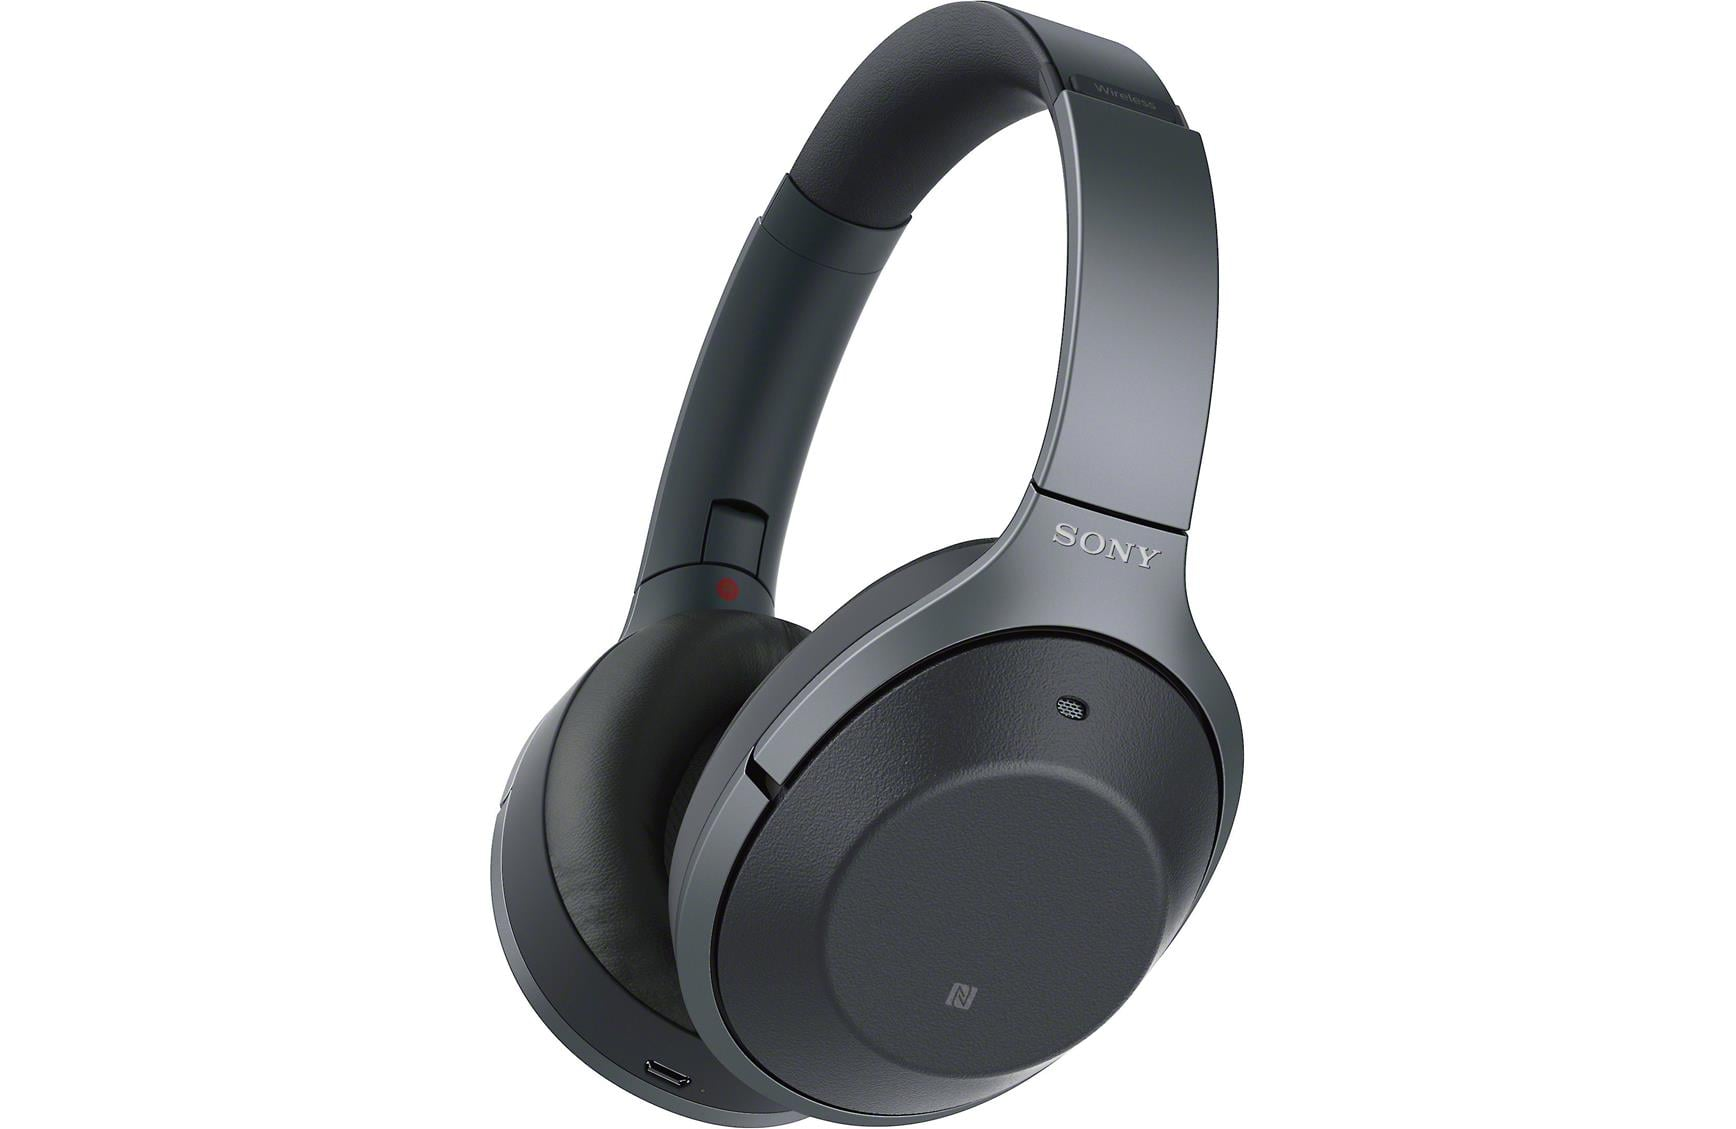 Sony WH-1000XM2 Over-Ear Bluetooth wireless noise-canceling headphones, $299.99 or less at Crutchfield